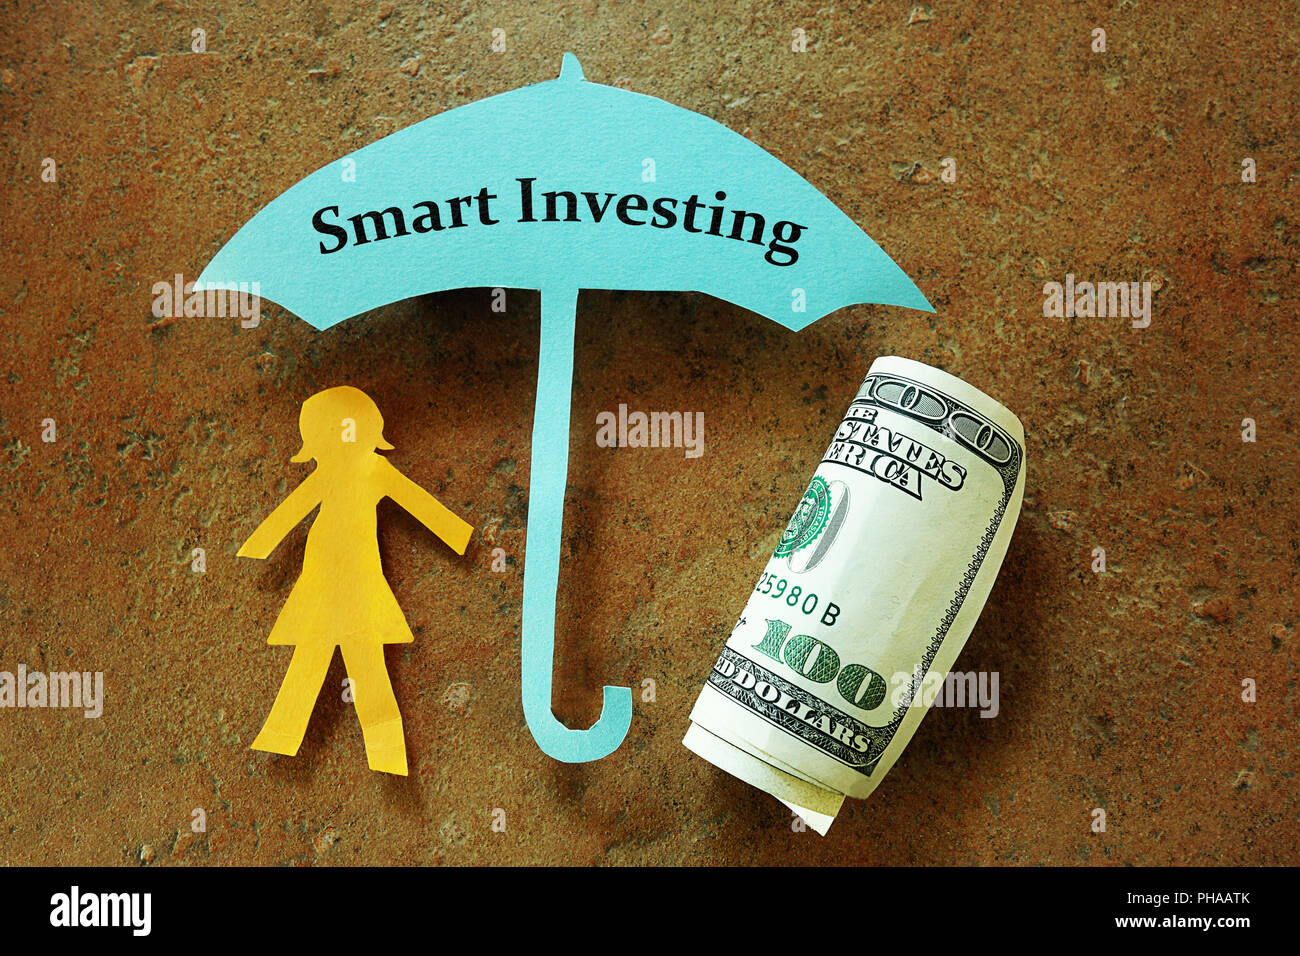 Smart Investing - Stock Image